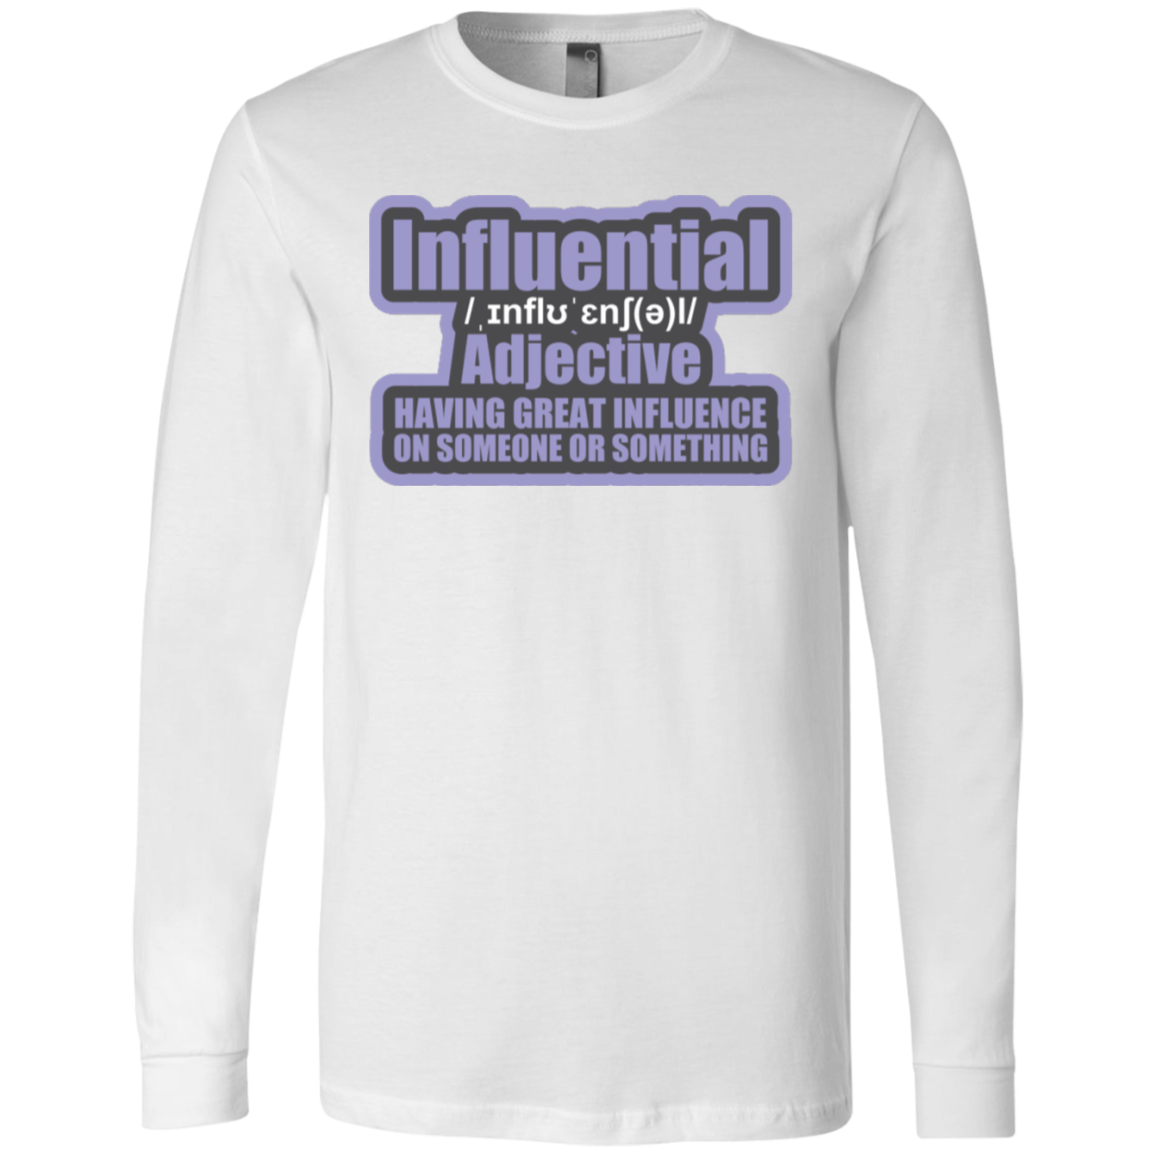 INFLUENTIAL 2.0 by Wisam LONG SLEEVE UNISEX  T-Shirt - SW@gSpot